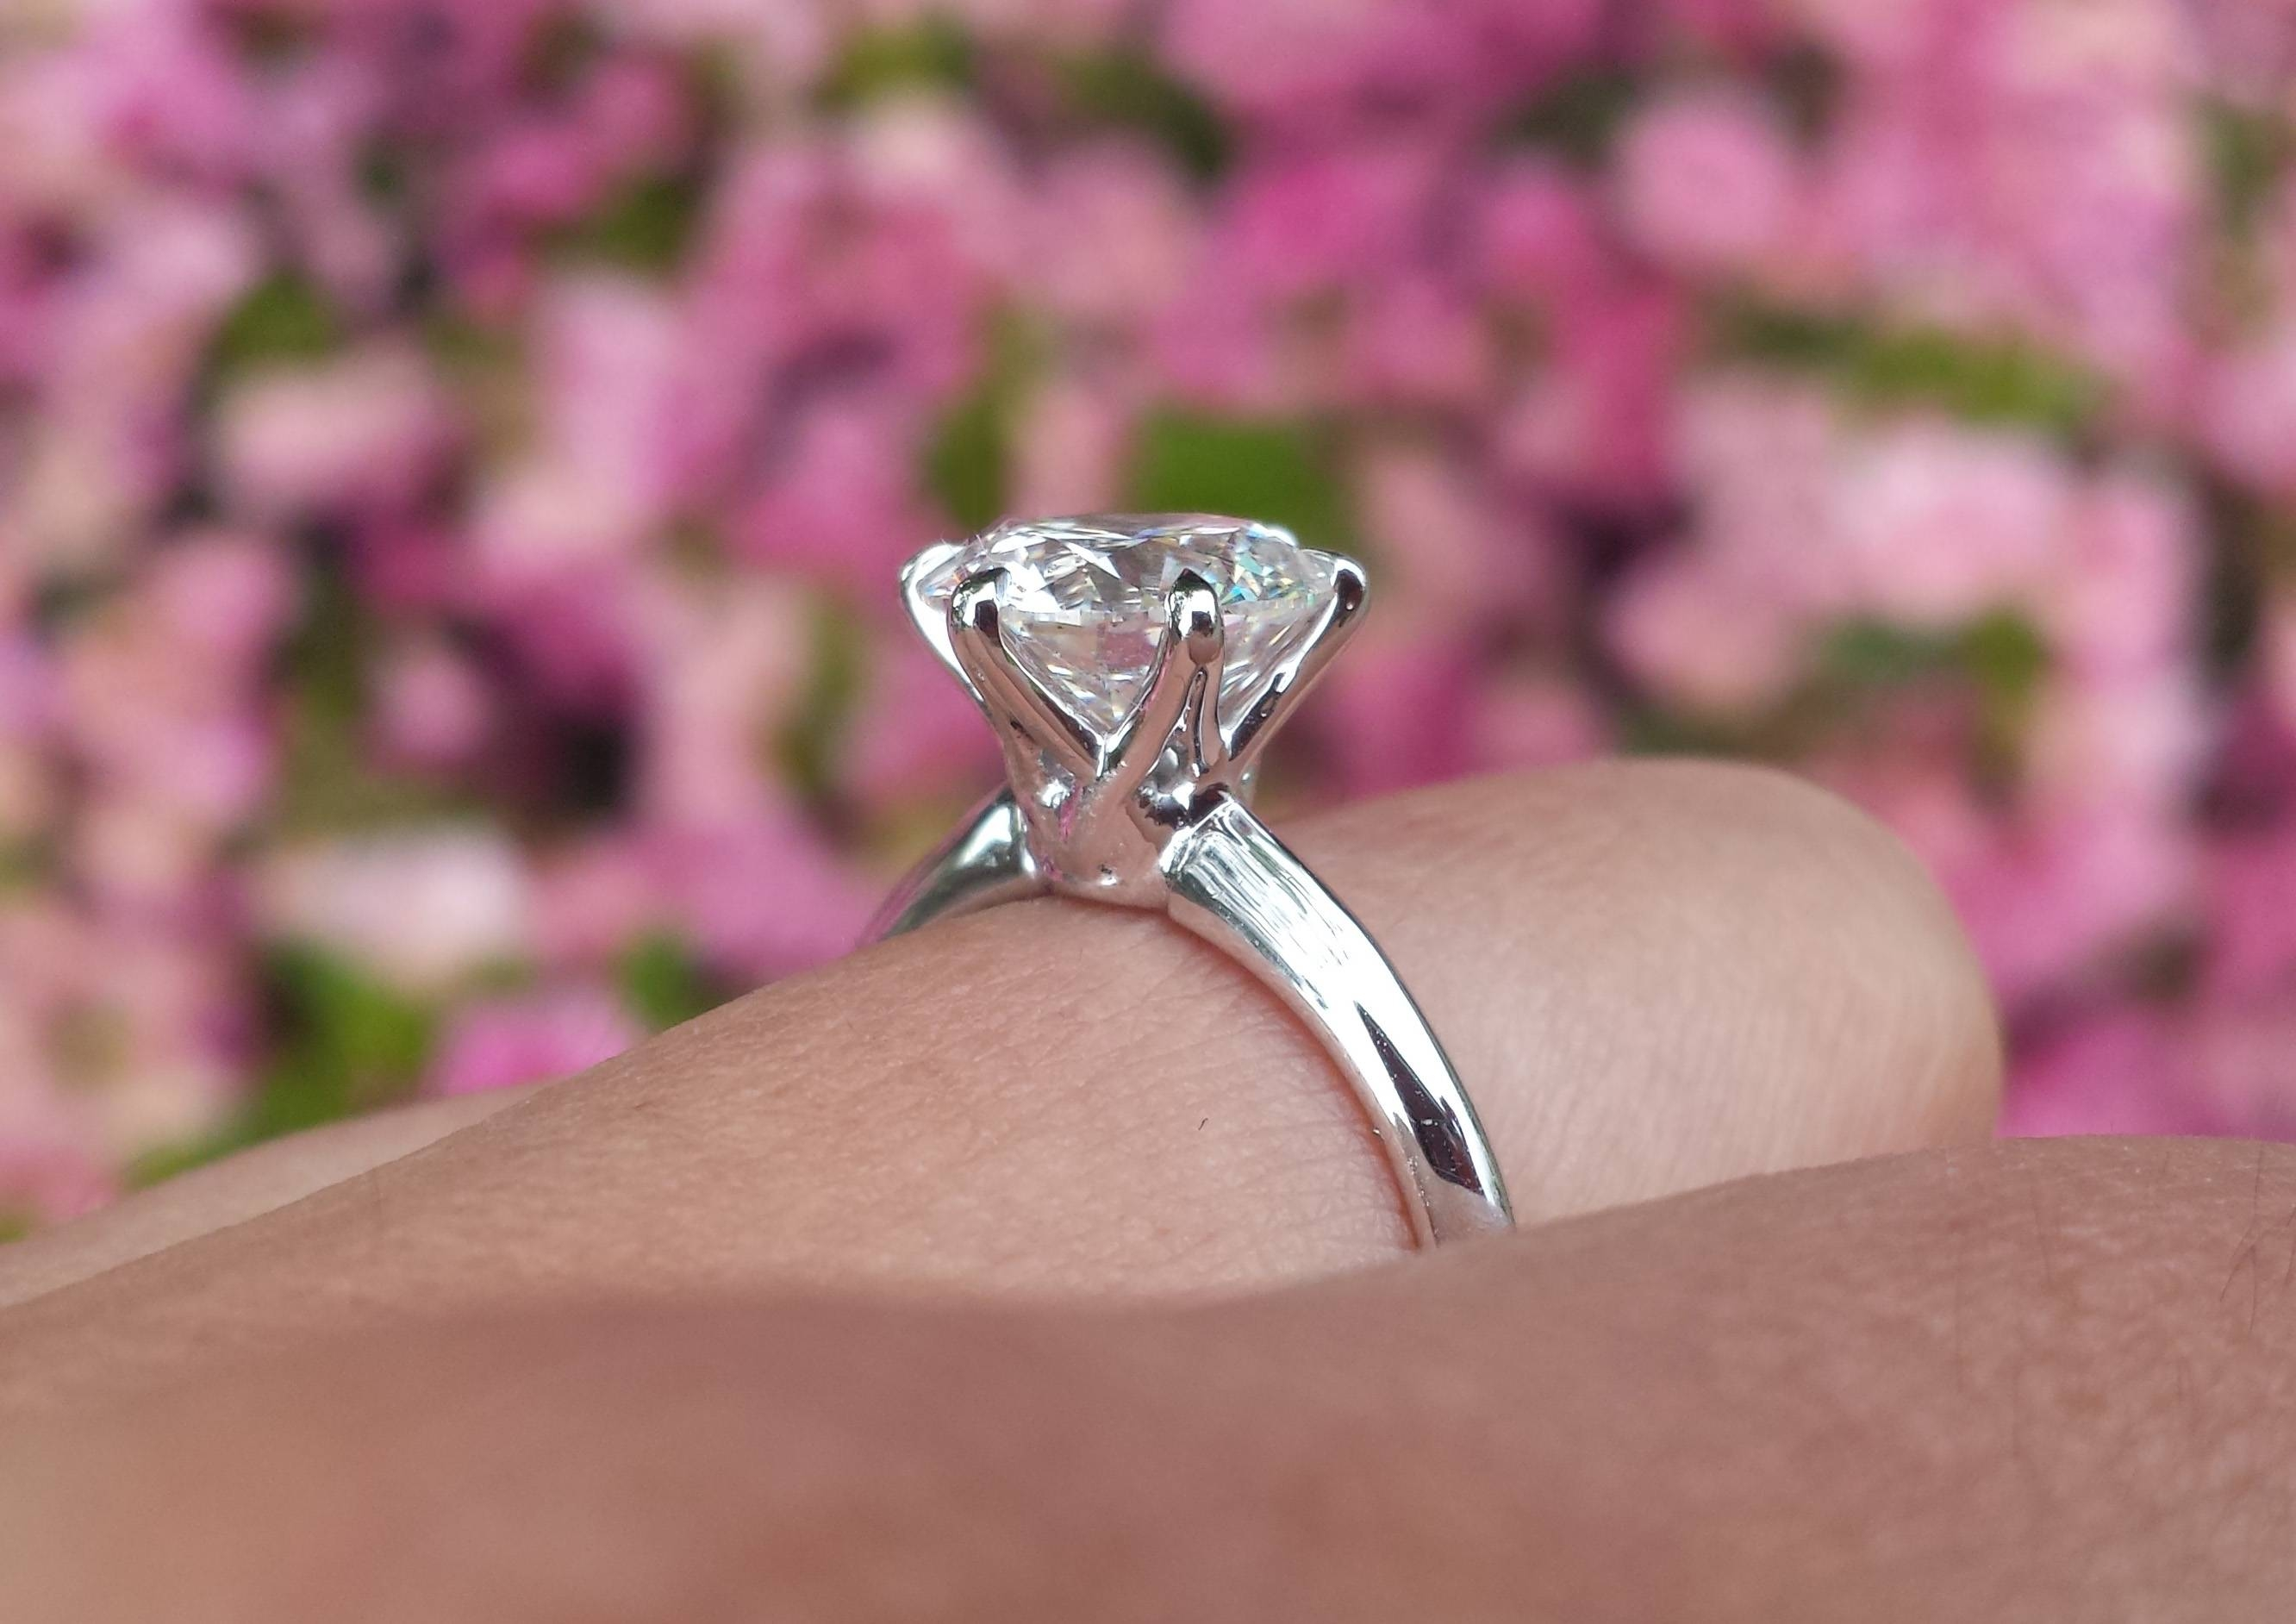 15 Photo of Adiamor Engagement Rings